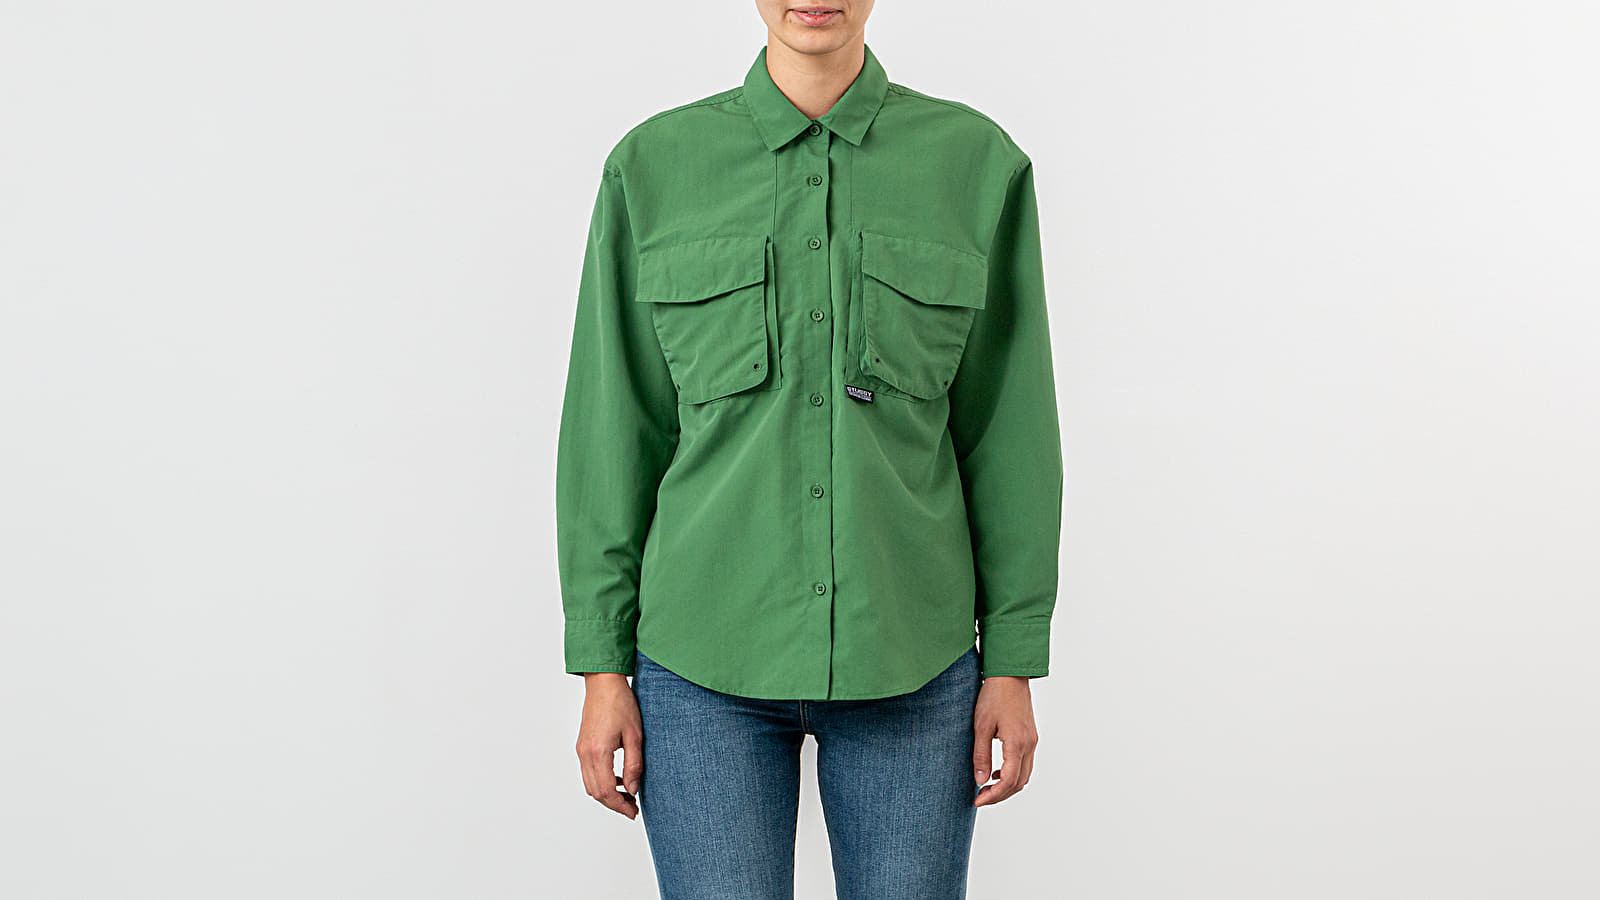 Ingek Stussy Range Outdoor Long Sleeve Shirt Green